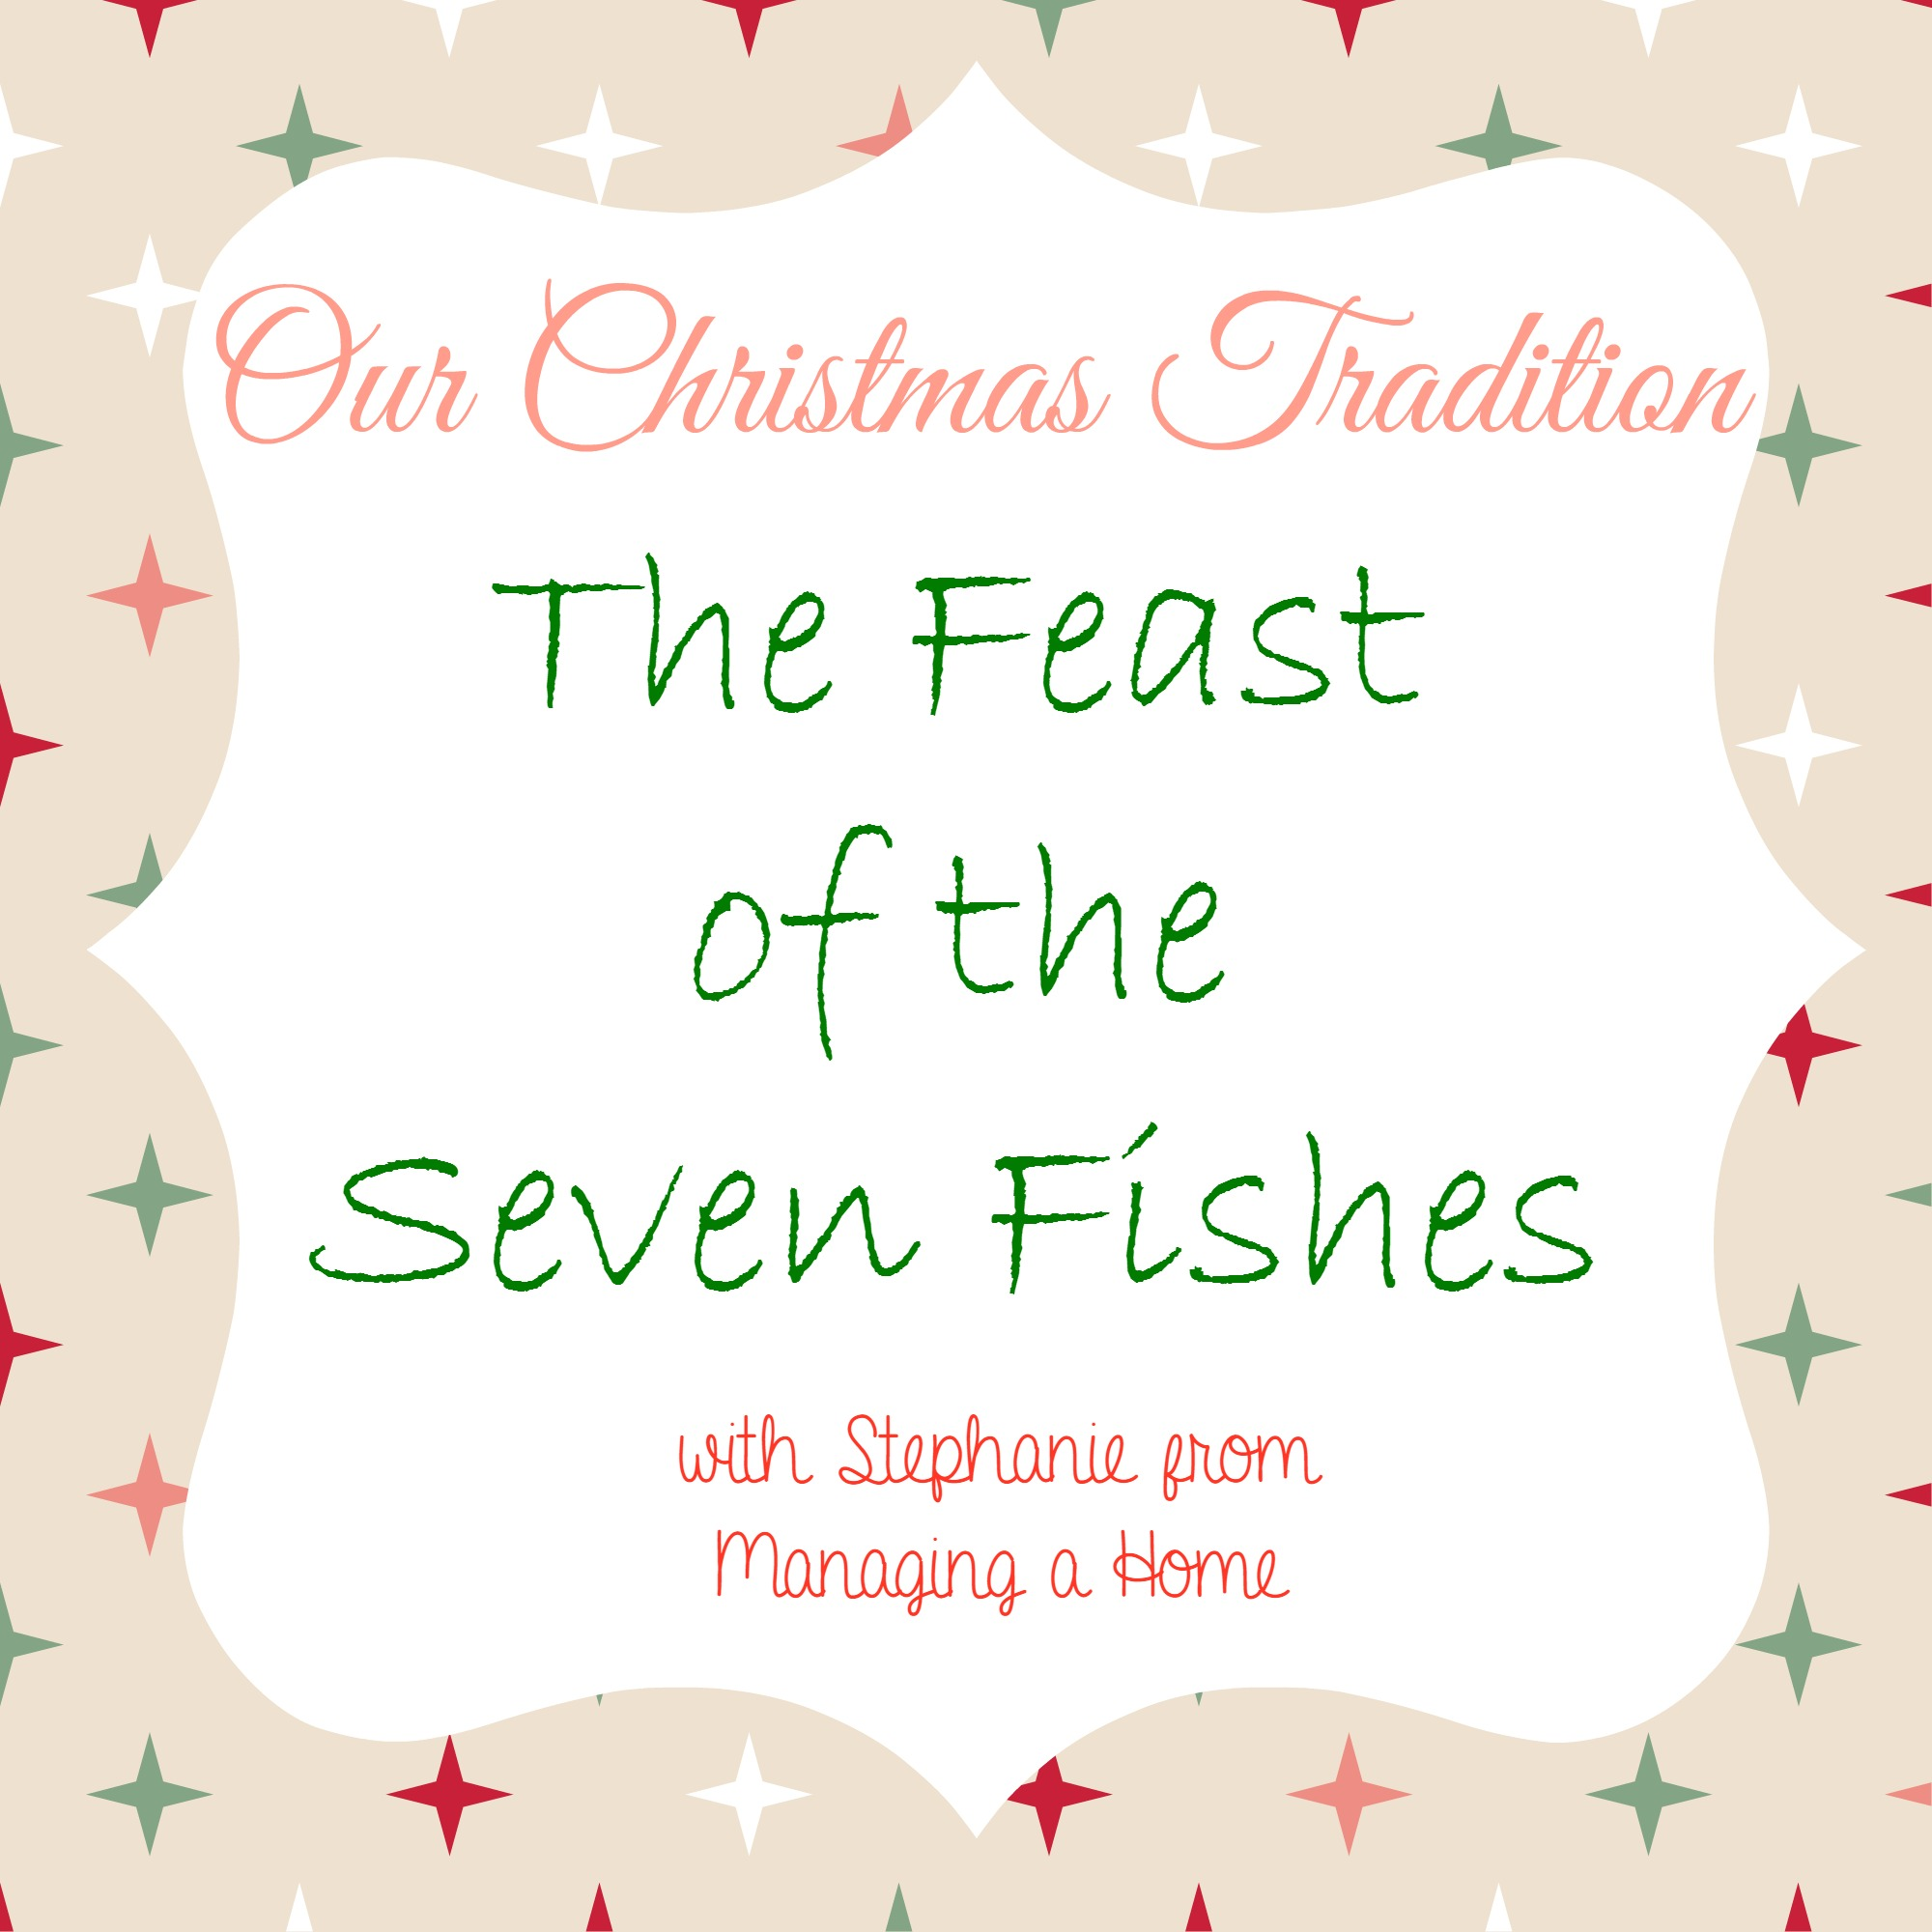 feast of seven fishes - Red Lobster Open On Christmas